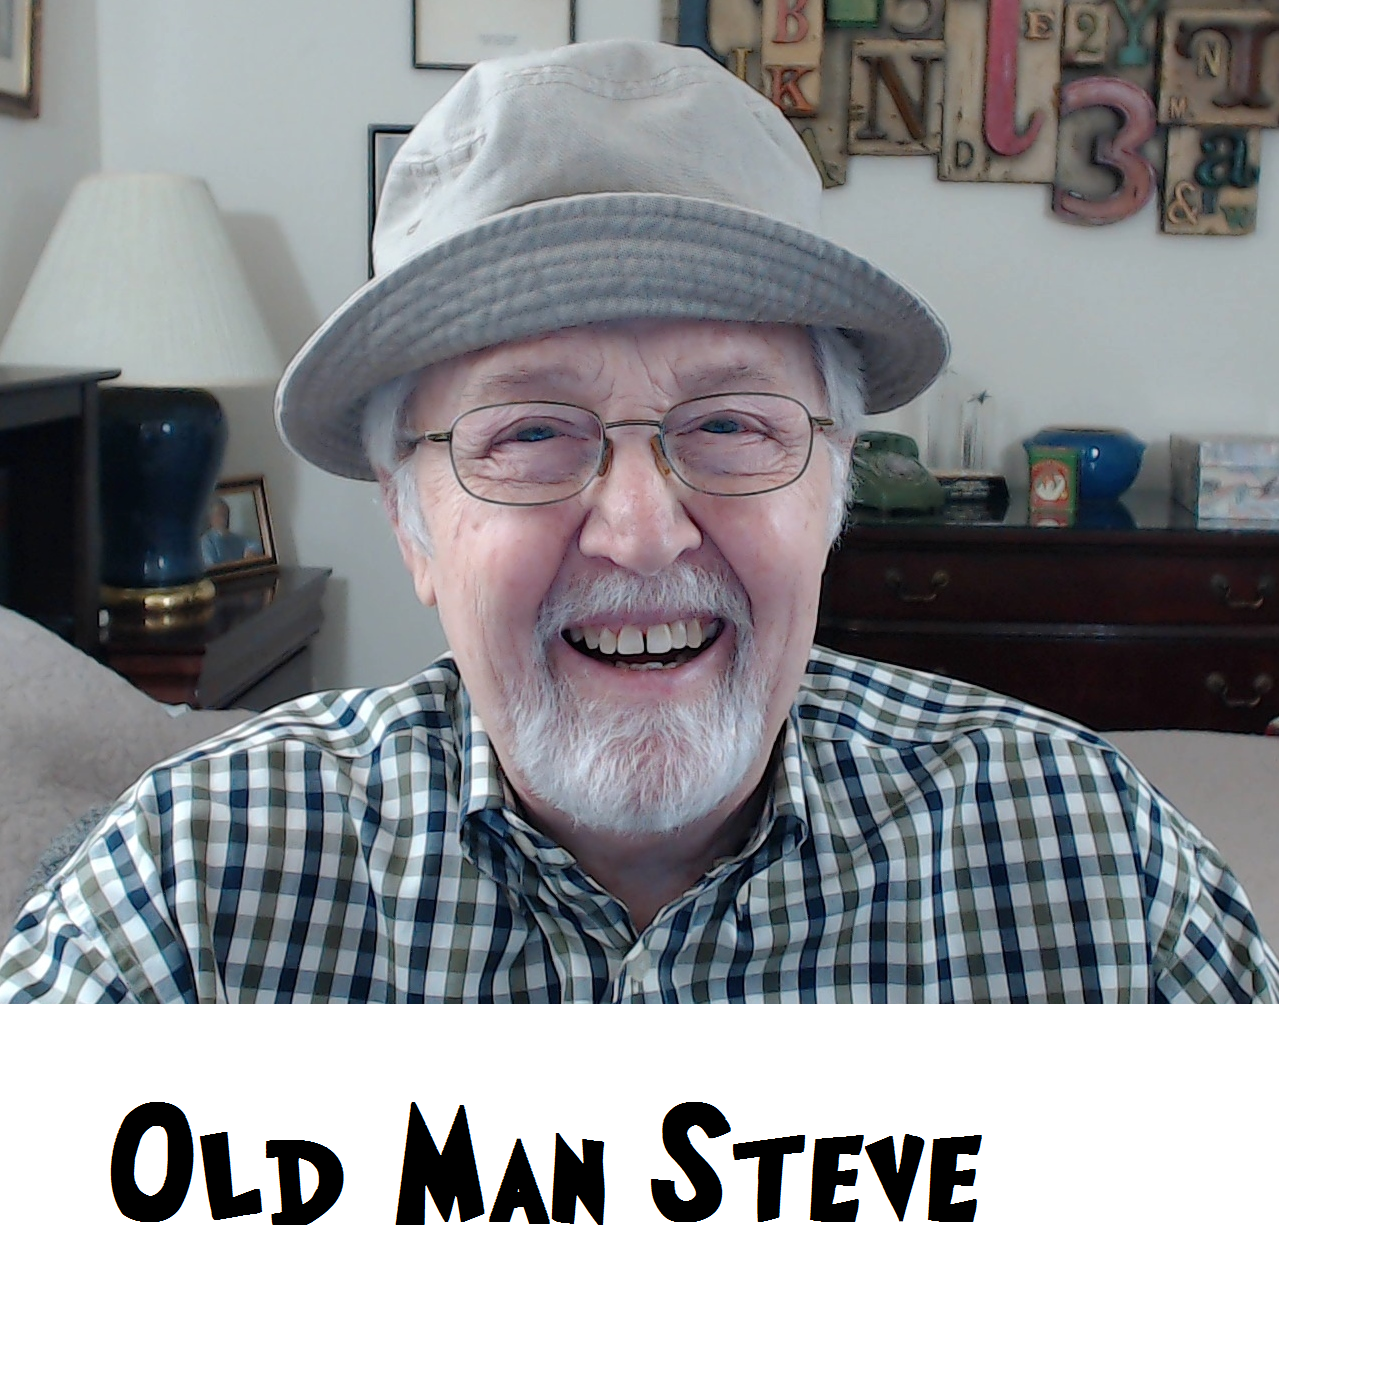 Old Man Steve says What The Heck y'all